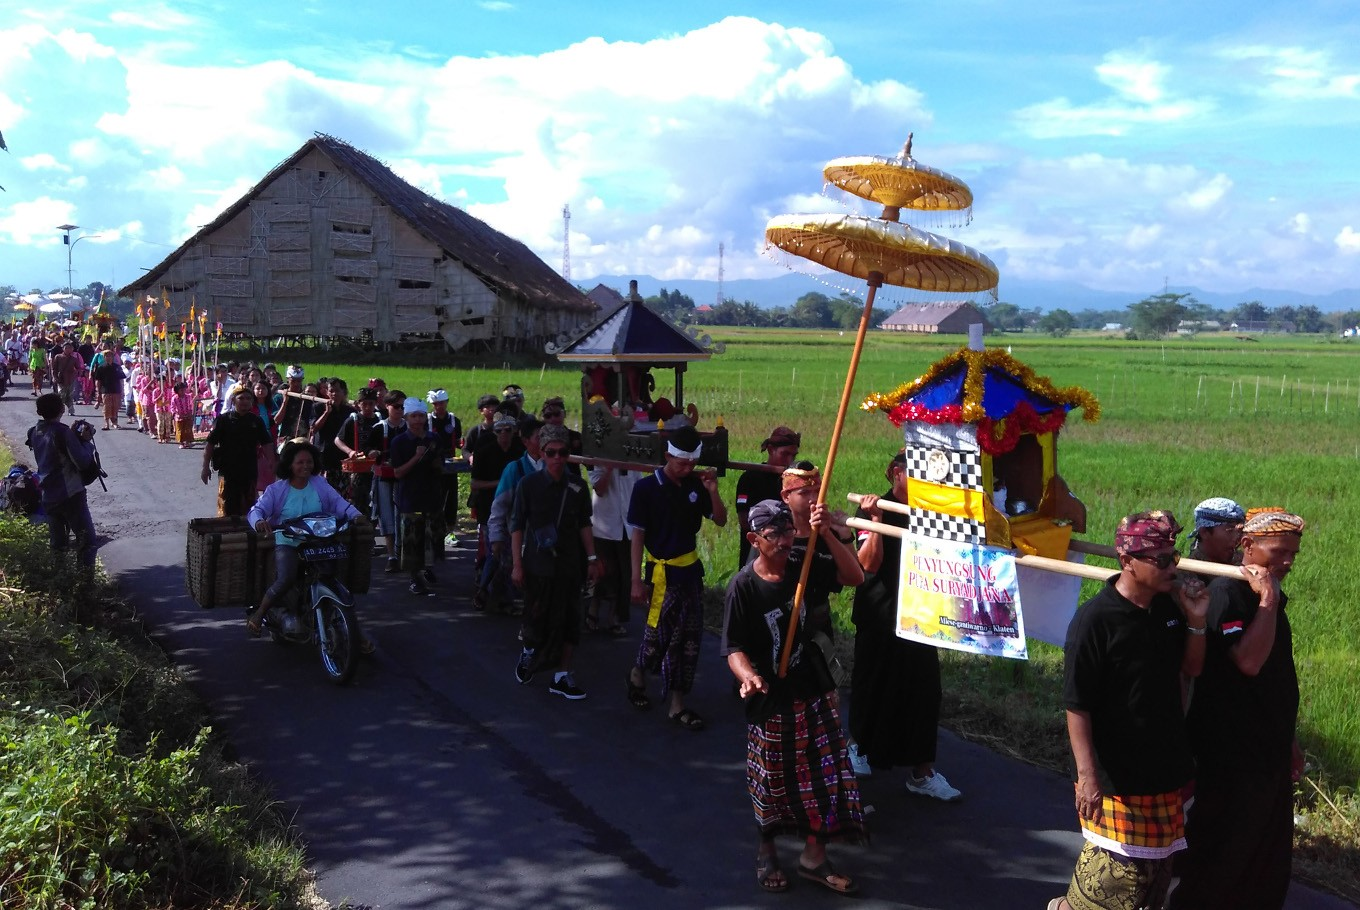 The parade is accompanied by gamelan Baleganjur. The participants bring offerings, including 'gunungan makanan' (cone-shaped float of offerings), 'ingkung' chicken, fruits and 'pratima' (sacred effigies). It is part of the Melasti ritual held in Klaten, Central Java, on Sunday, March 11.